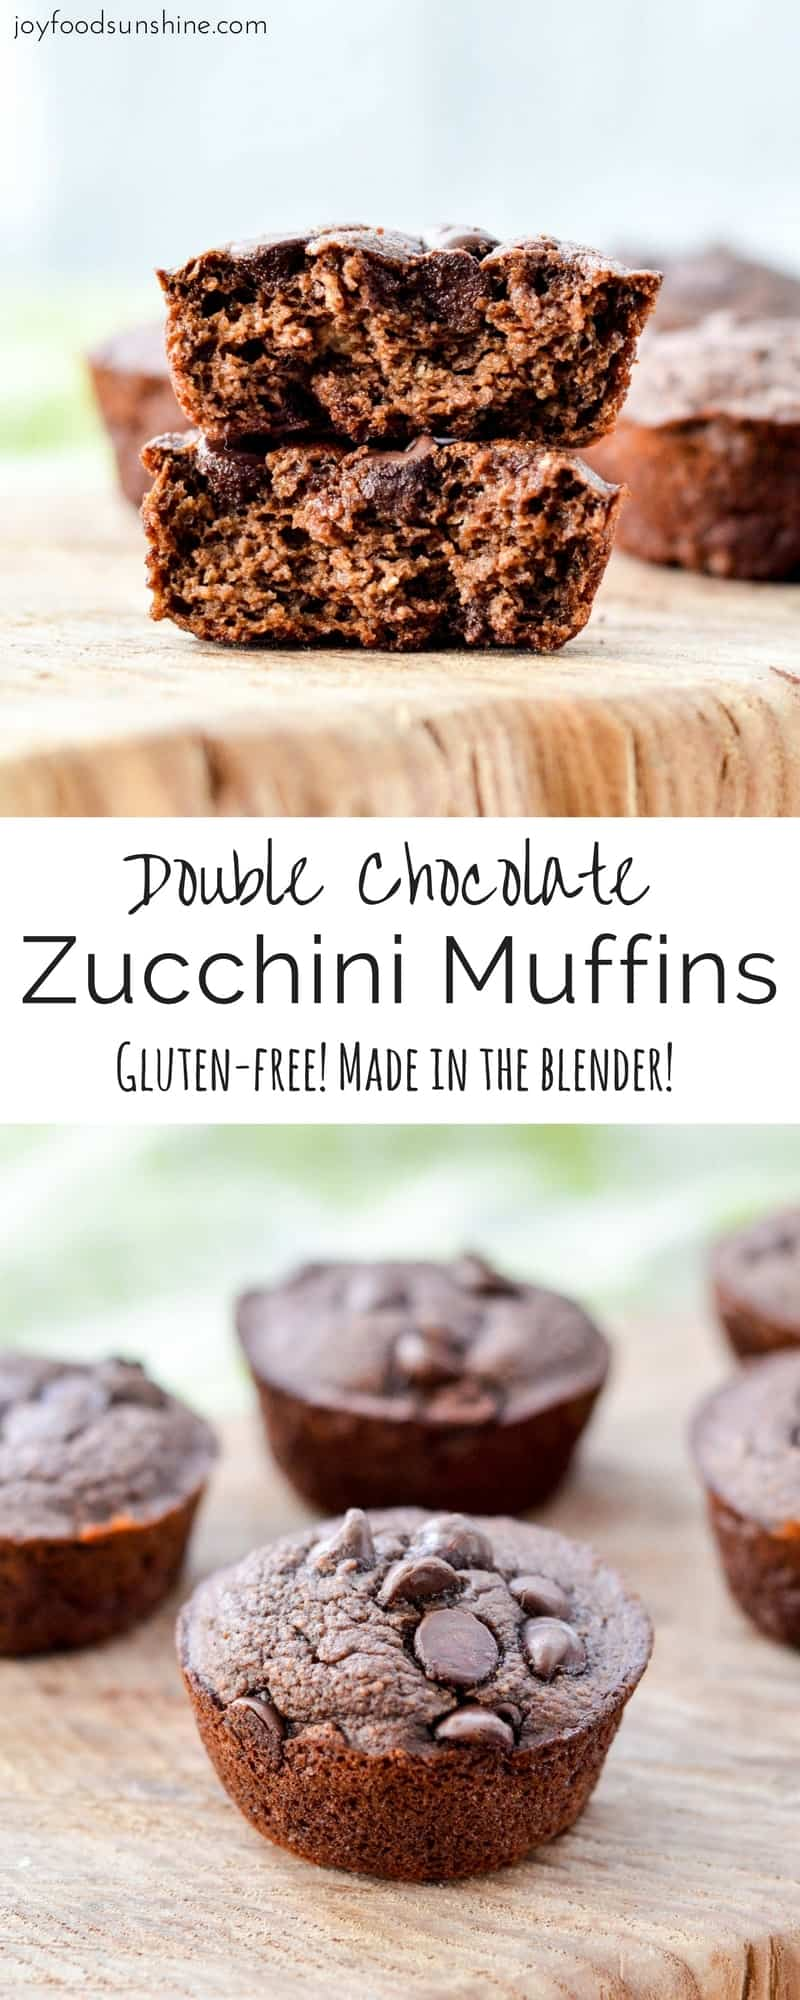 Double Chocolate Zucchini Muffins! Made in your blender these healthy muffins are gluten-free and loaded with sneaky veggies!